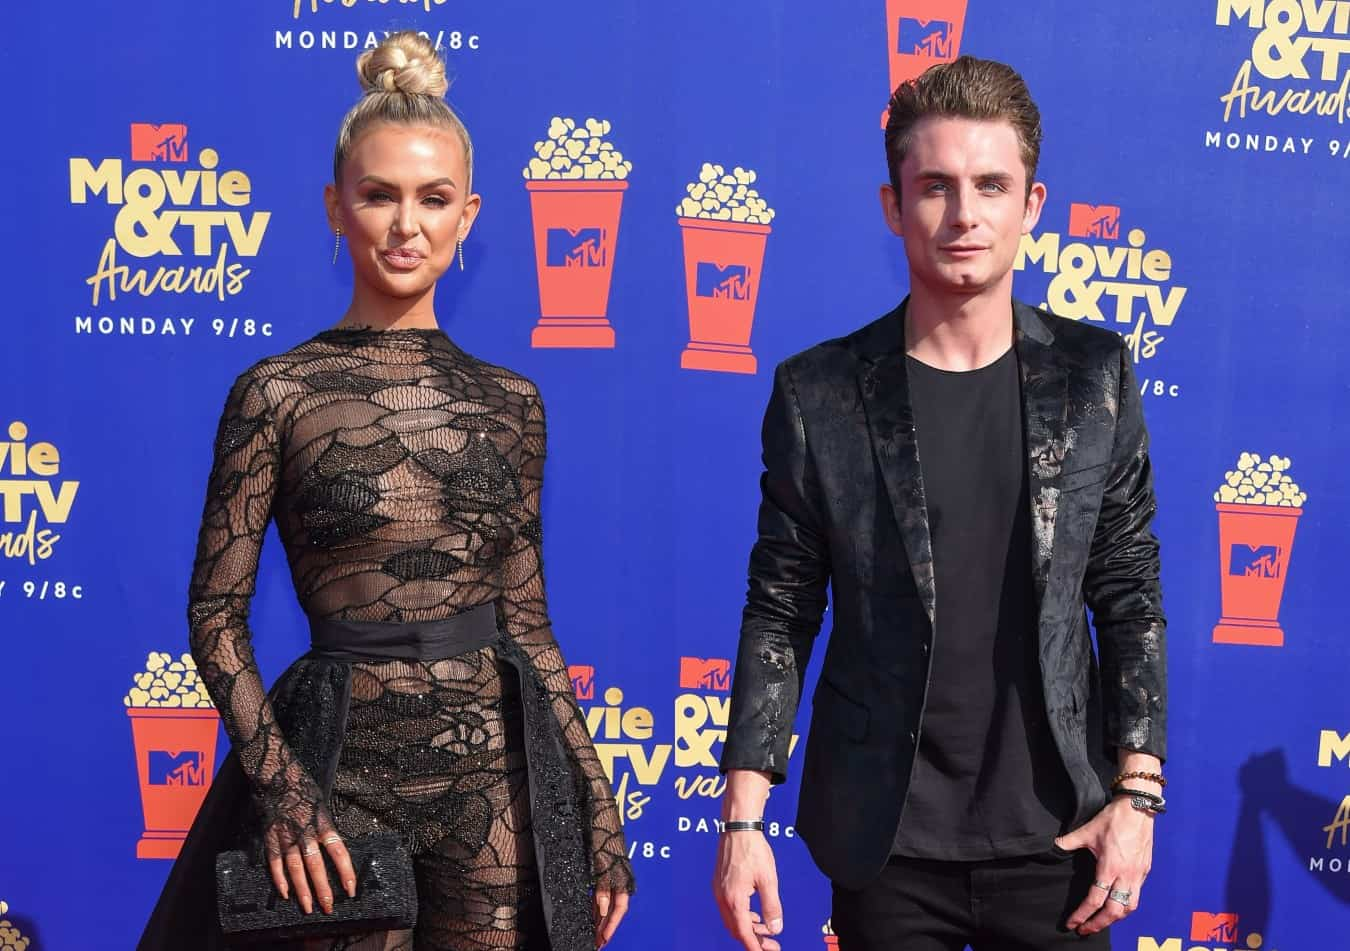 PHOTO: Vanderpump Rules Stars Lala Kent and James Kennedy Reconcile Their Friendship Amid Season 8 Filming